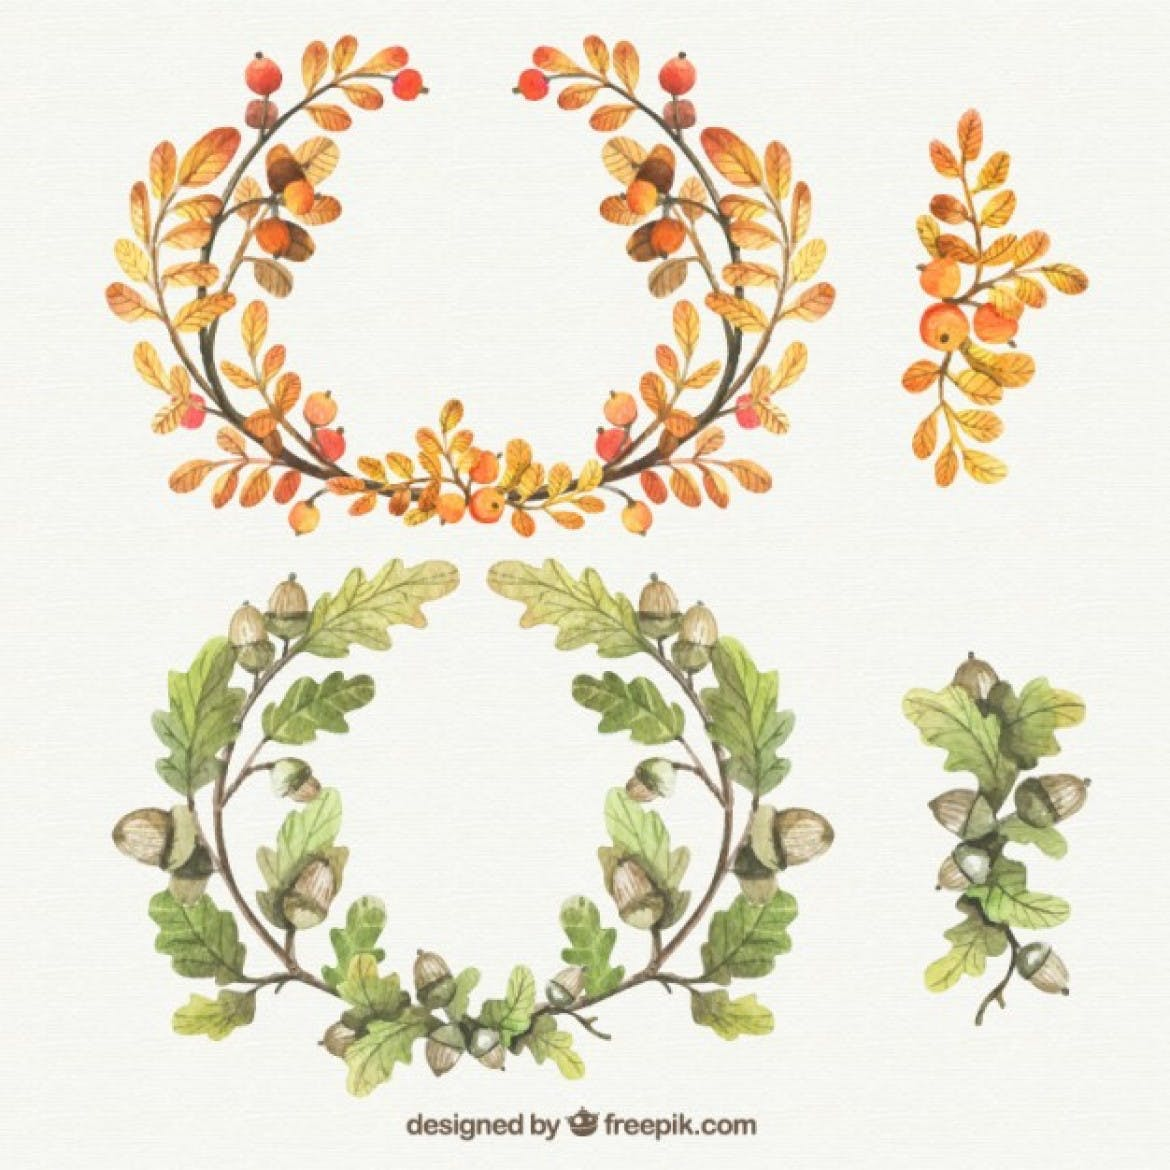 wpid-watercolor-autumnal-wreaths_23-2147522650-1170x1170